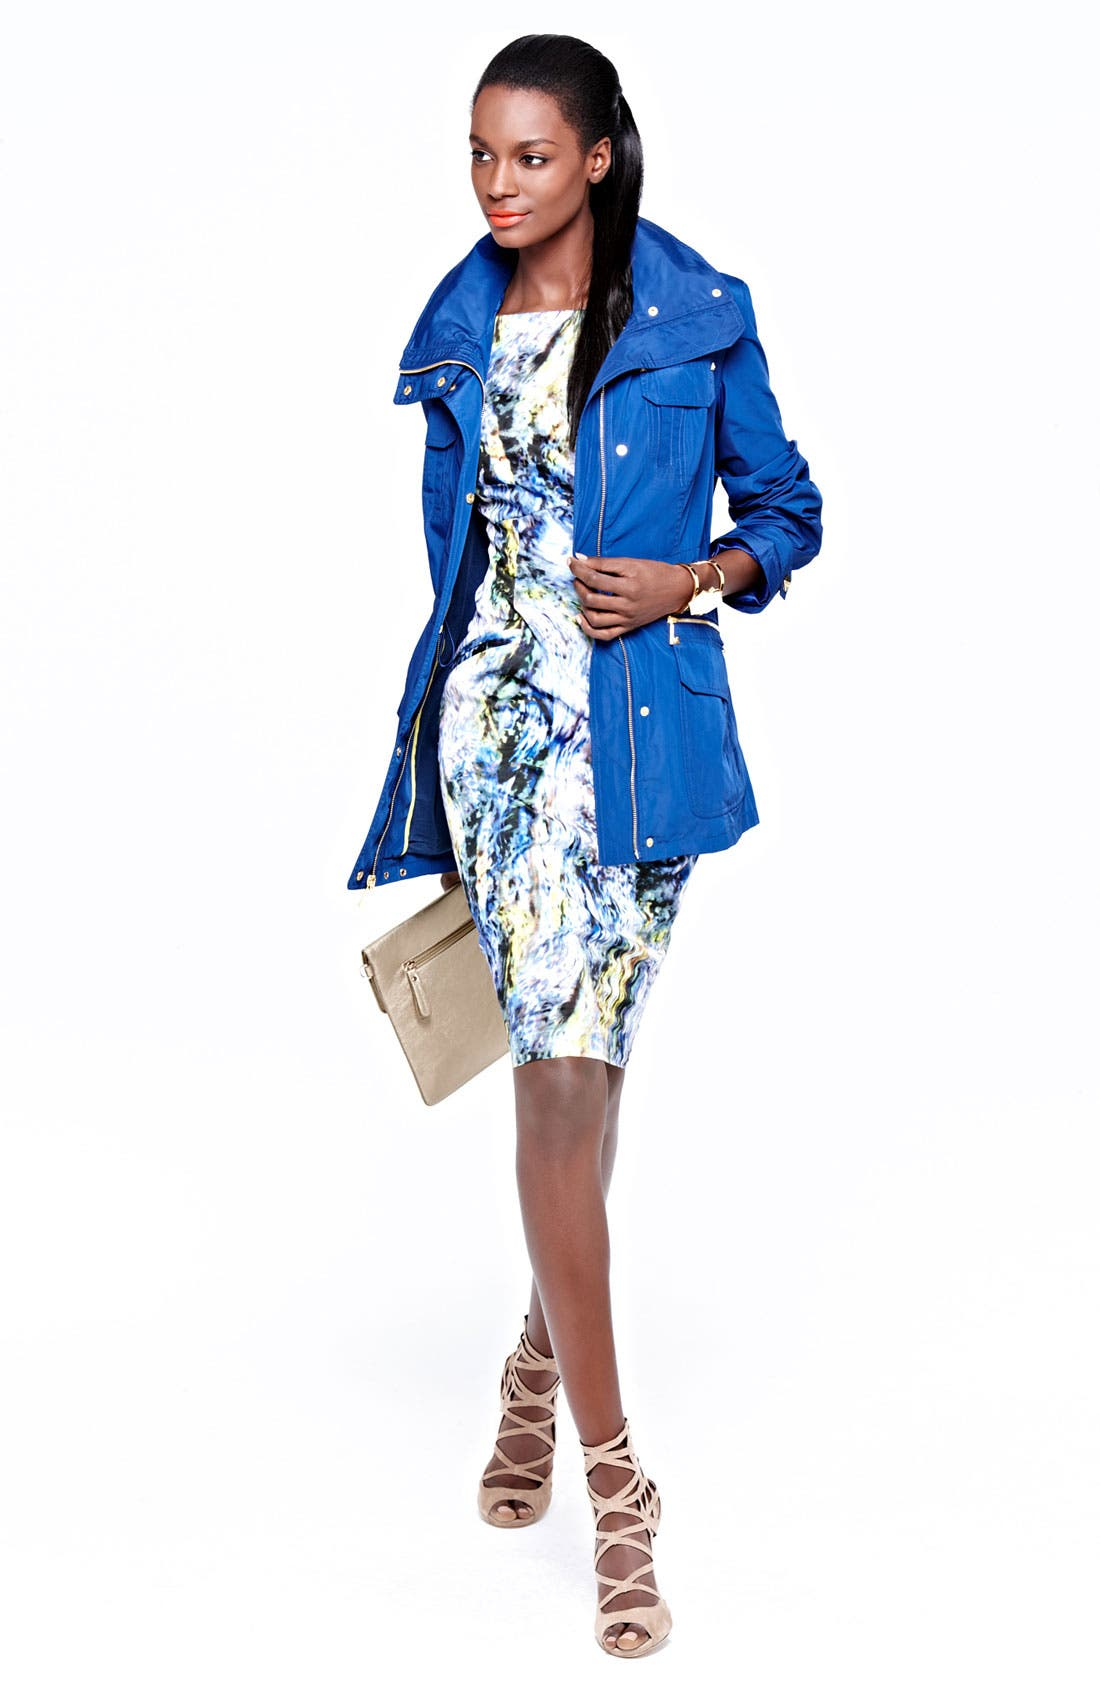 Alternate Image 1 Selected - MICHAEL Michael Kors Anorak & Maggy London Sheath Dress